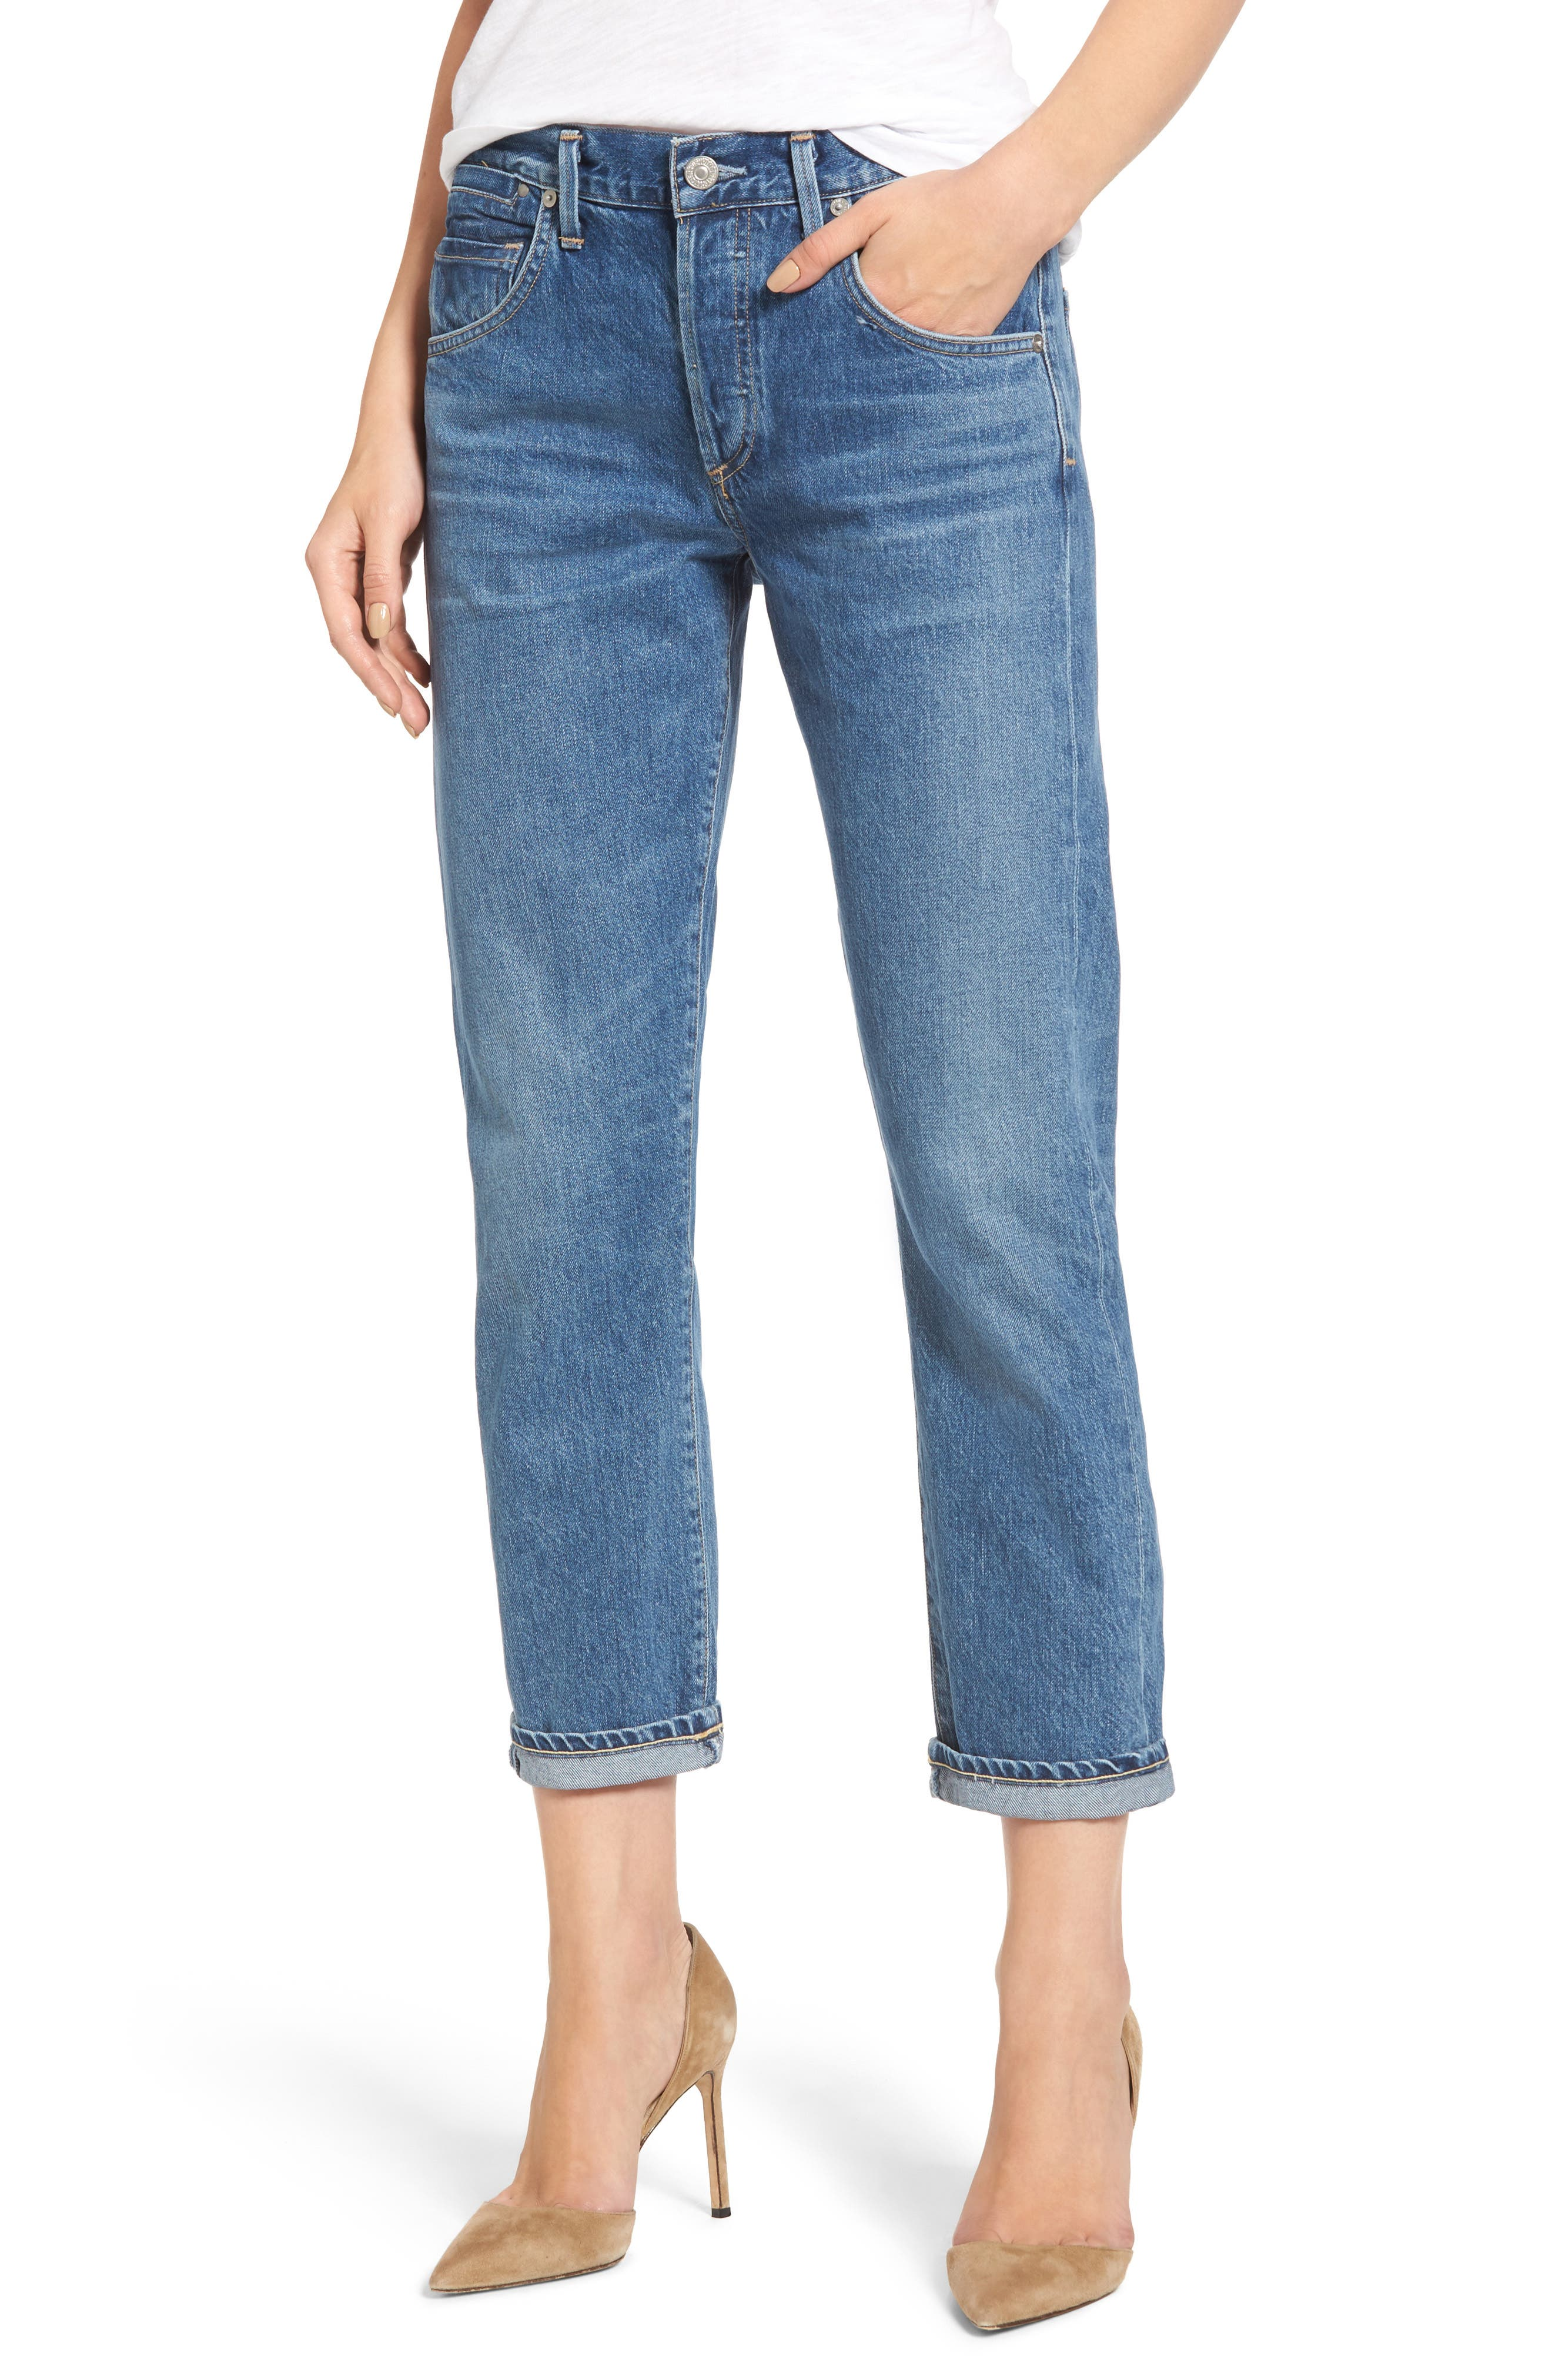 Emerson Slim Boyfriend Jeans,                             Main thumbnail 1, color,                             Admire